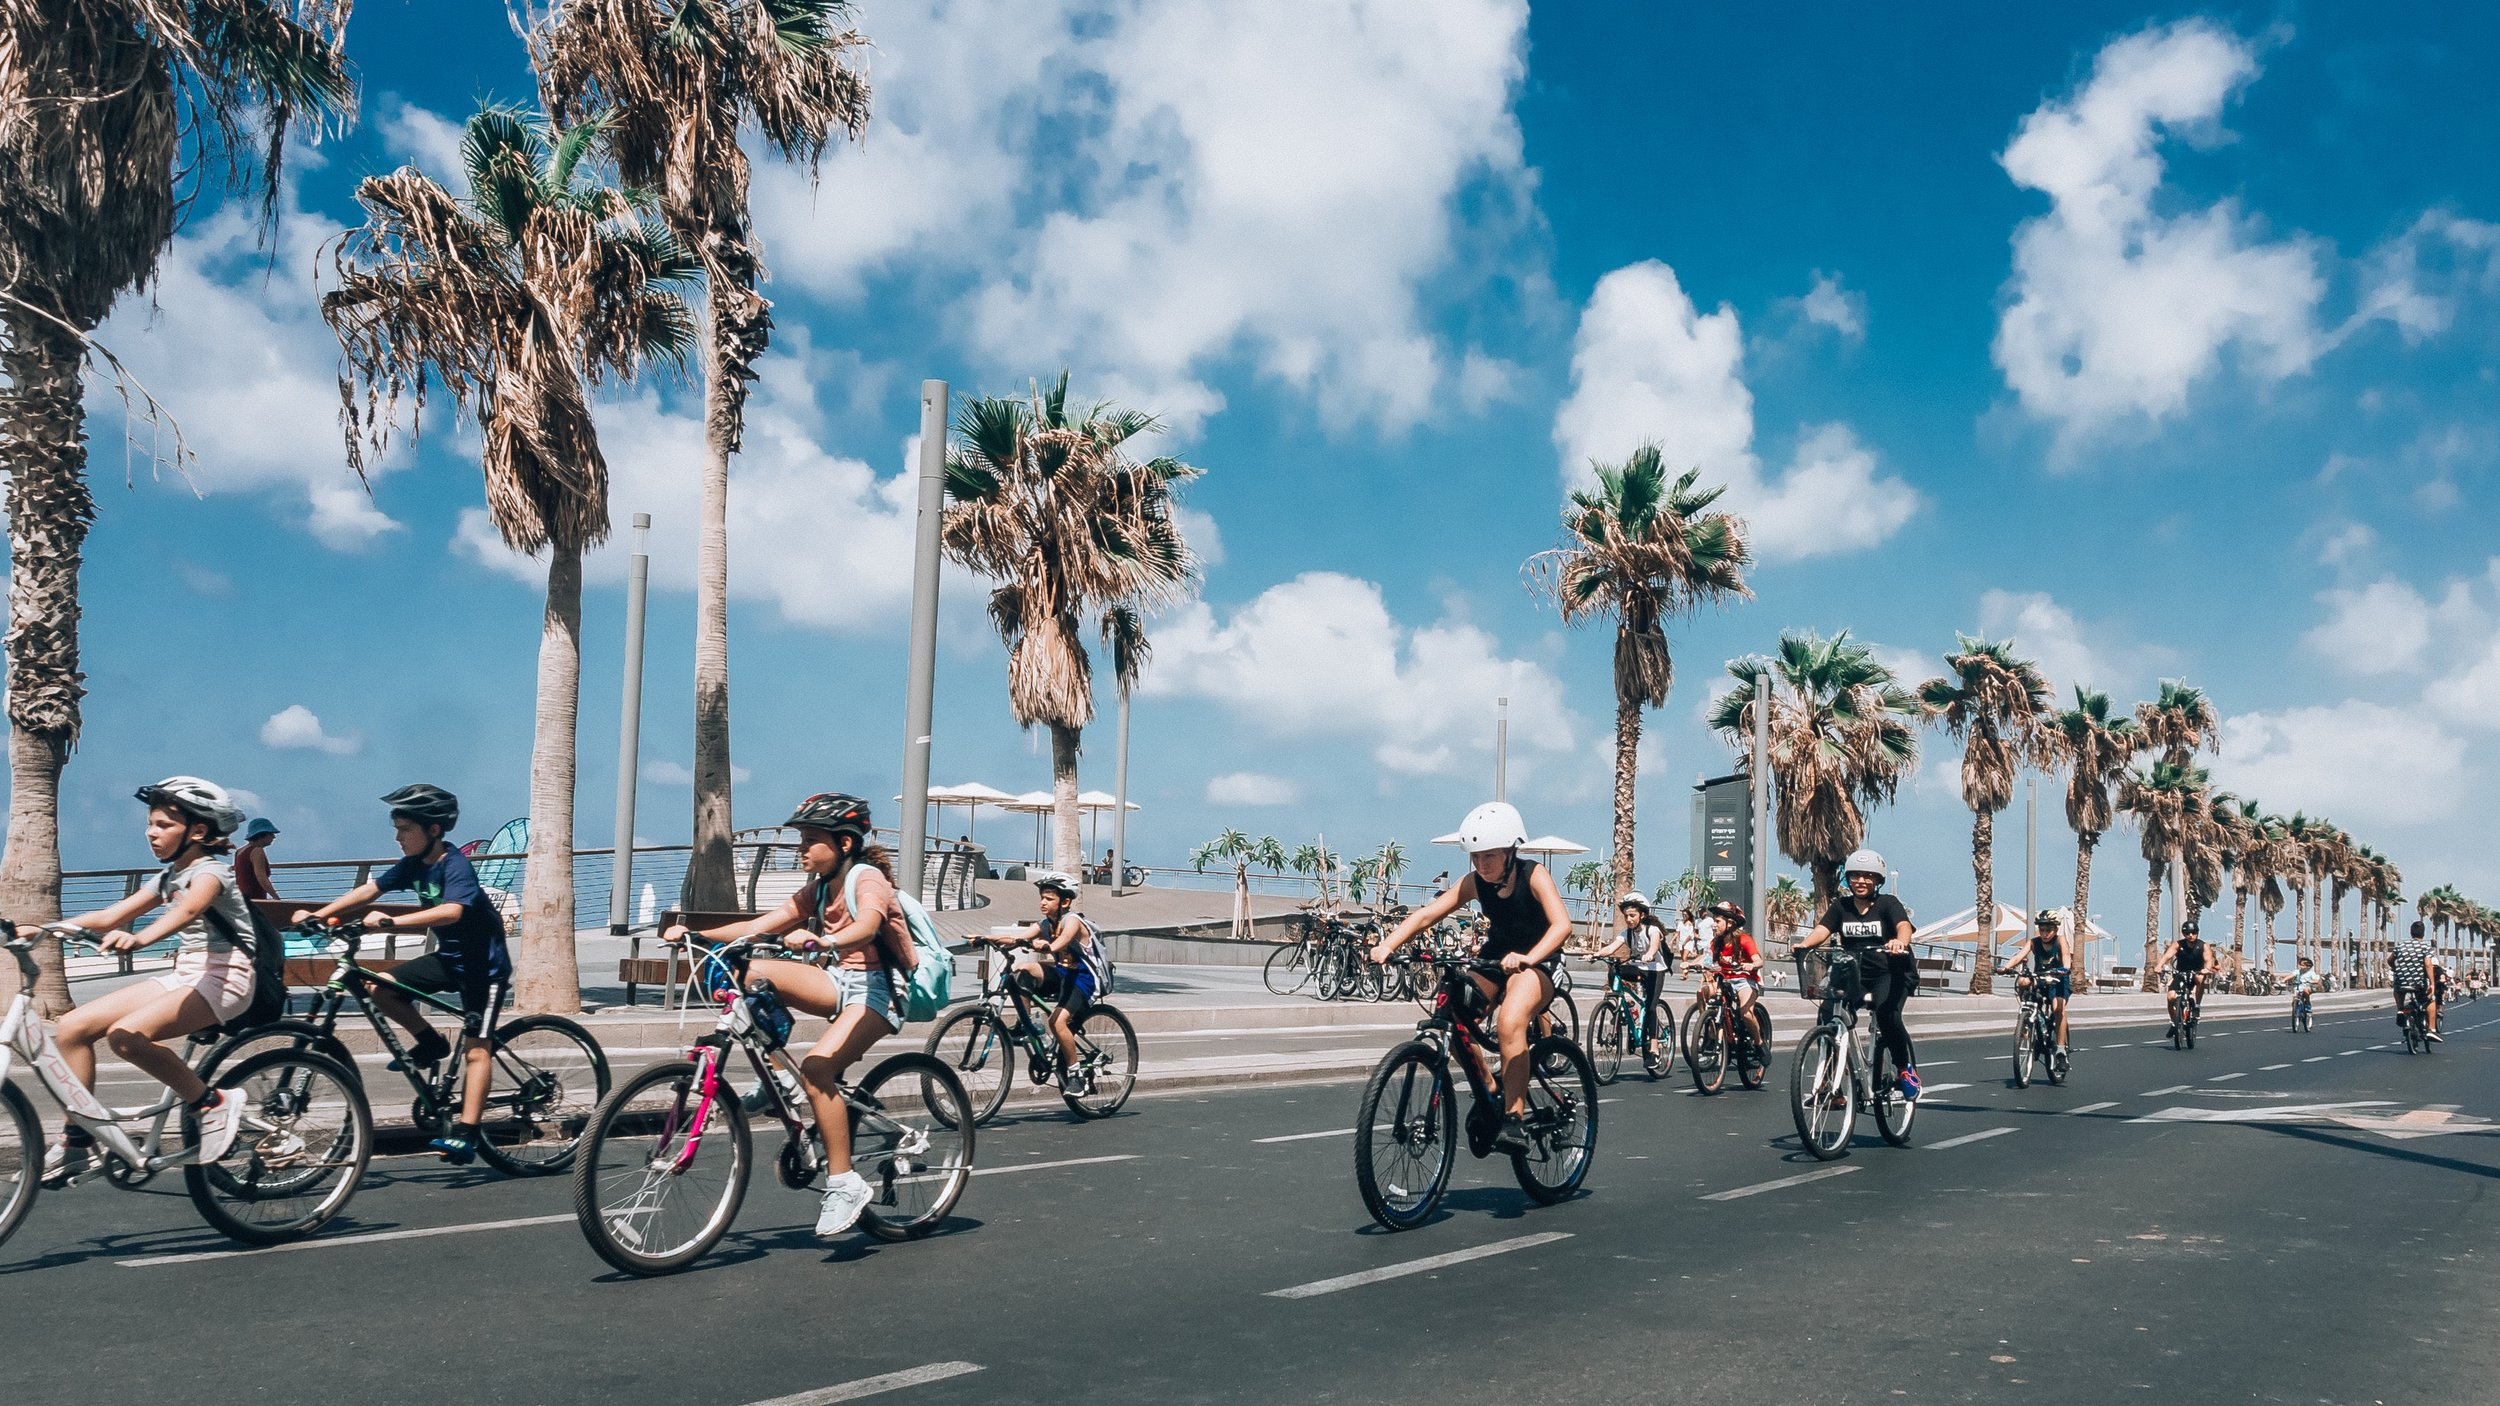 Getting out and about has never been easier! Rental bikes and scooters are spread around the city for you to use.